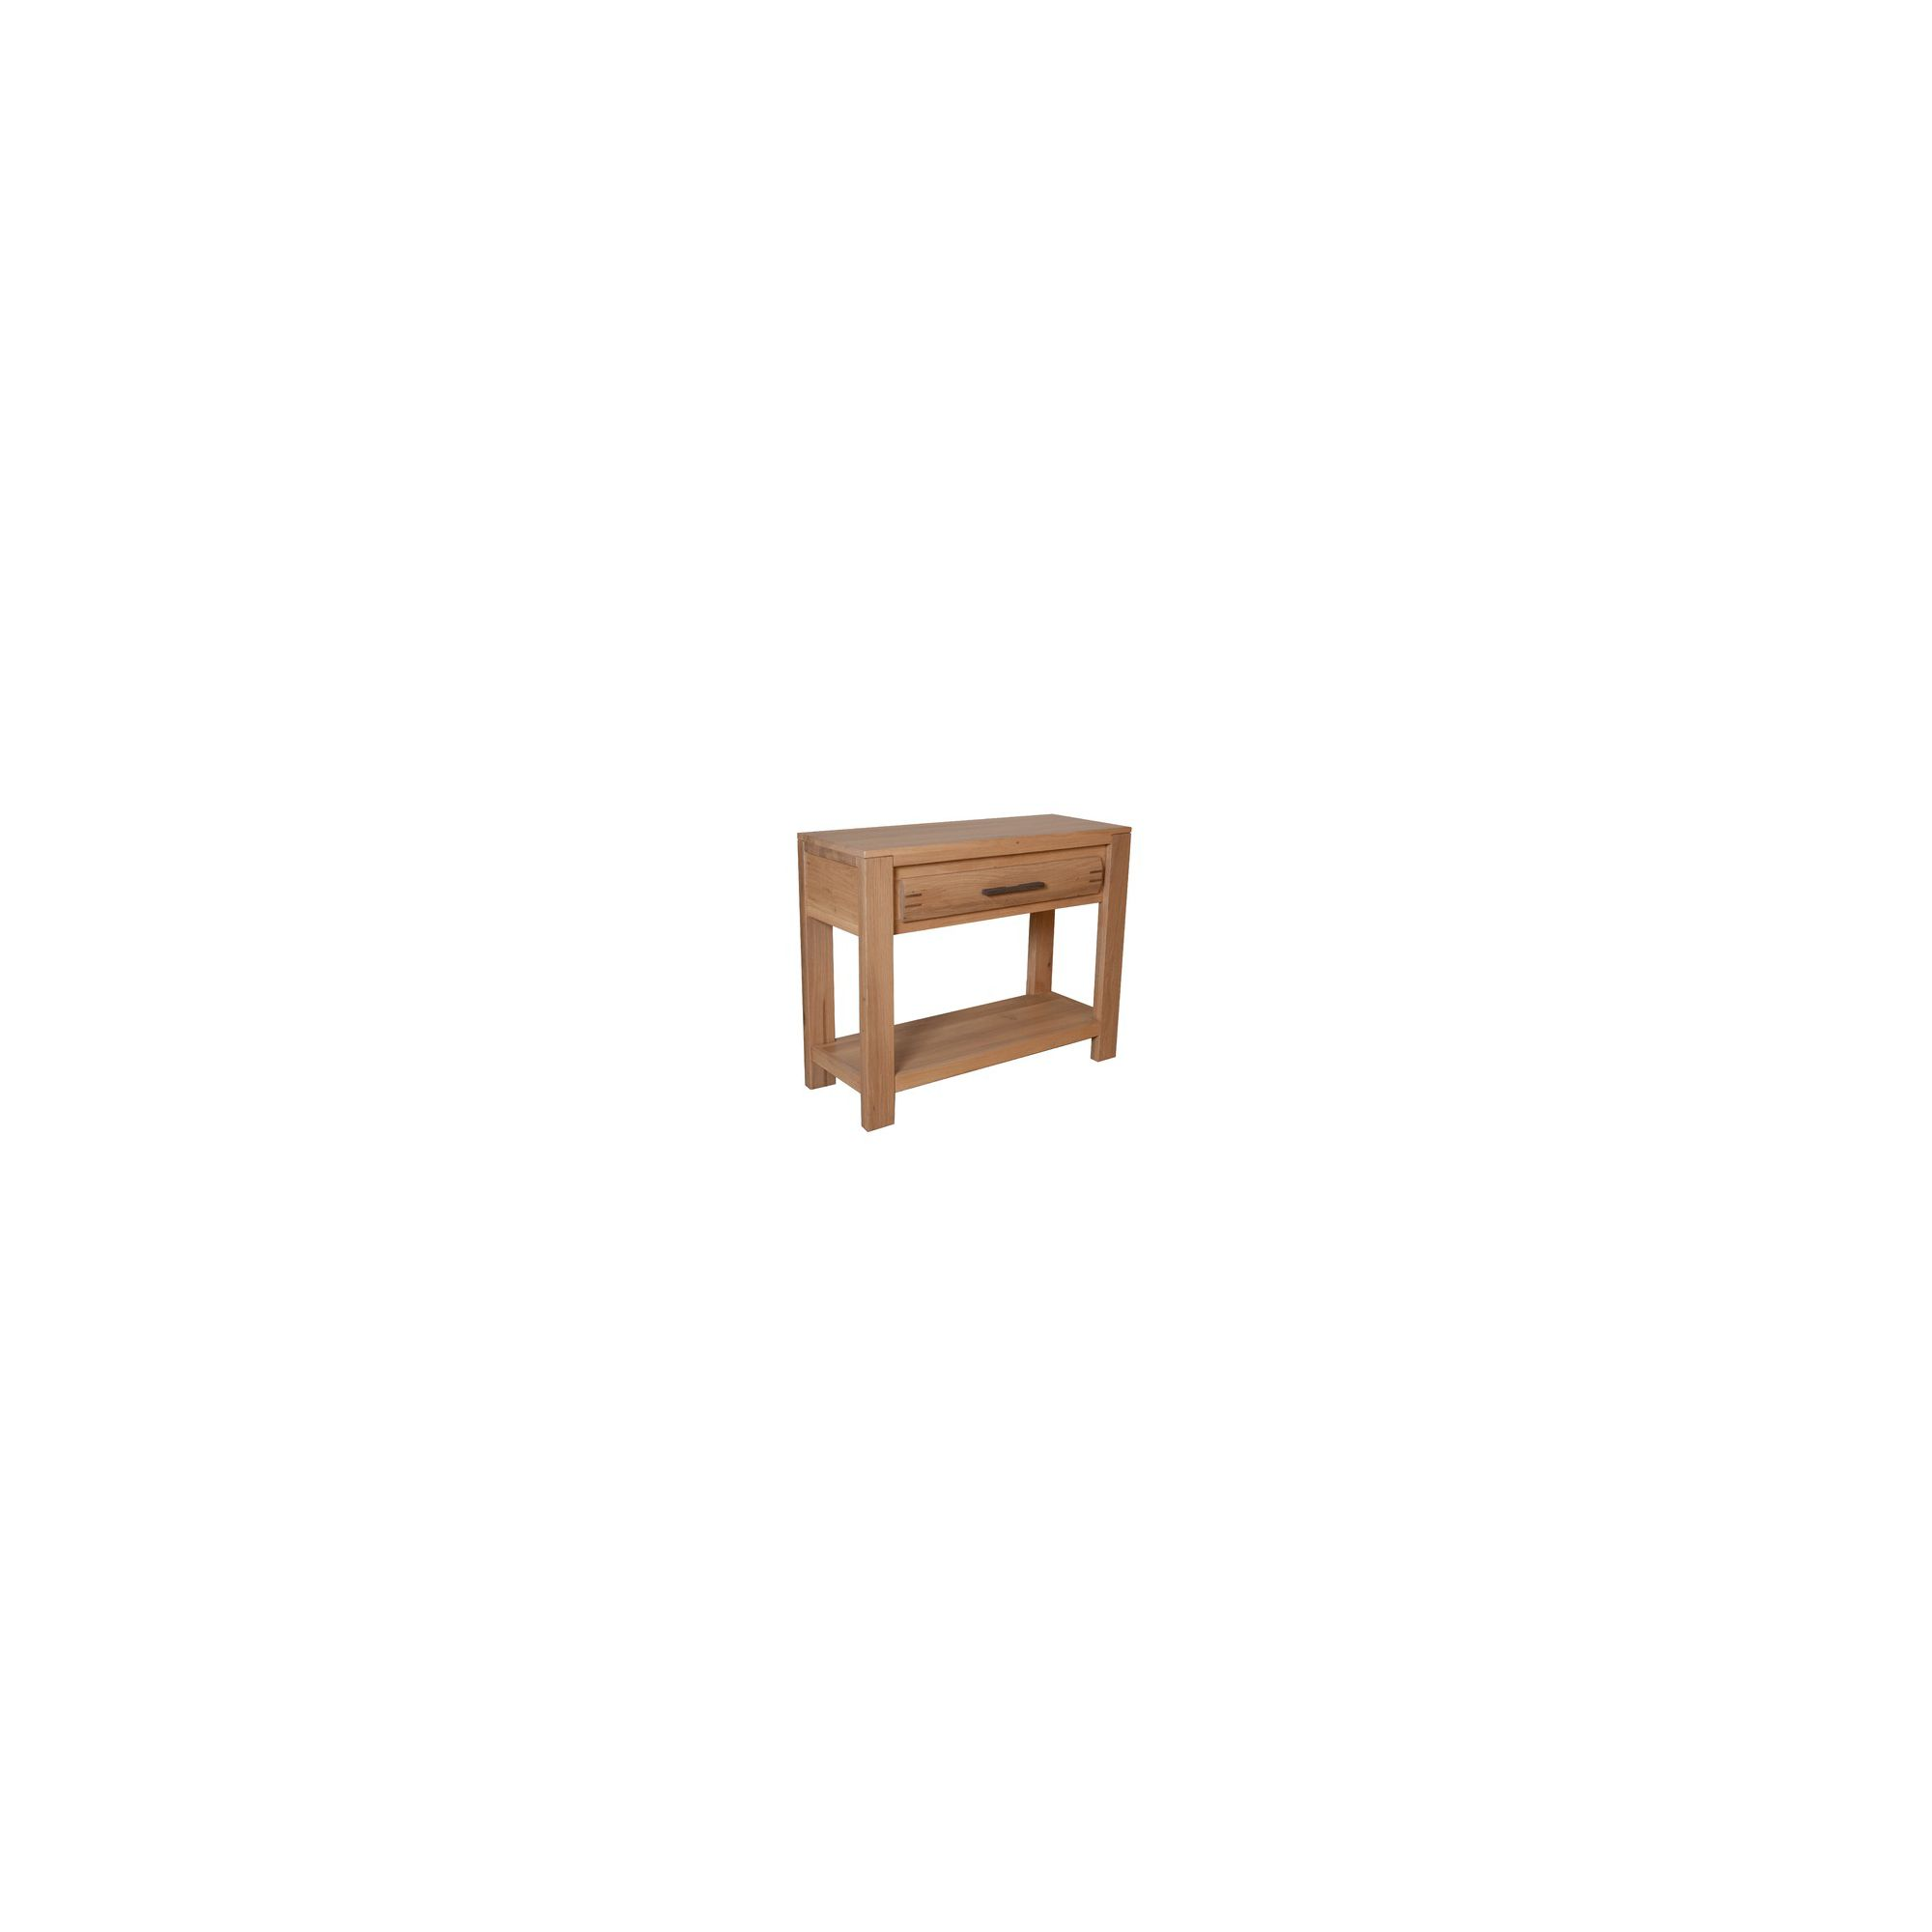 Sherry Designs Newbury Dining Oak Console Table at Tesco Direct